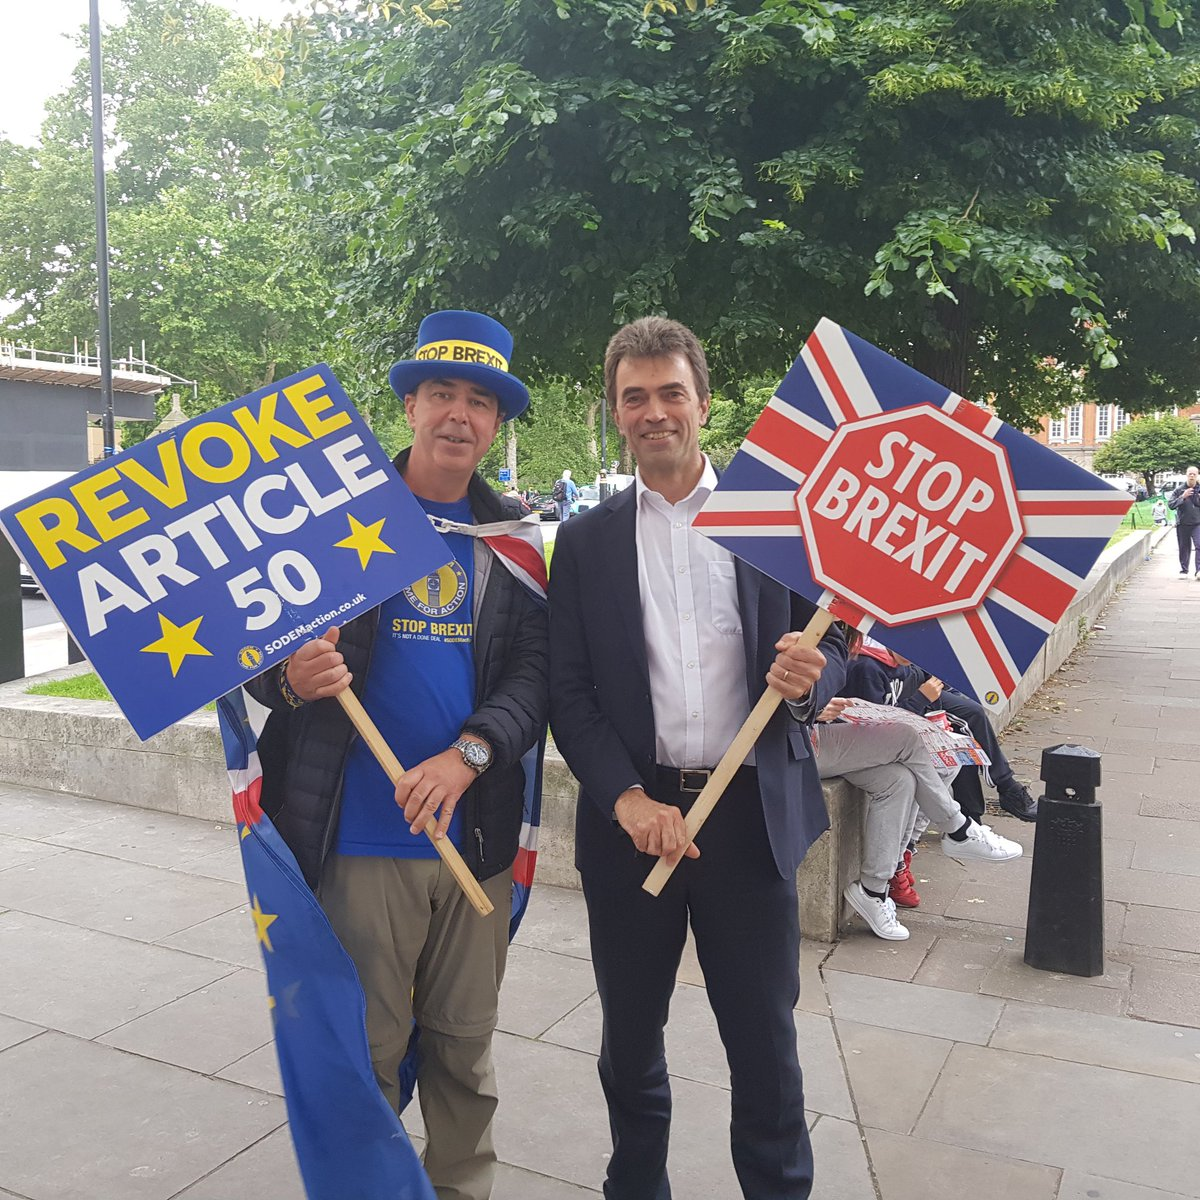 Always lovely to see @thomasbrake MP. The message is clear: #BollocksToBrexit #StopBrexit